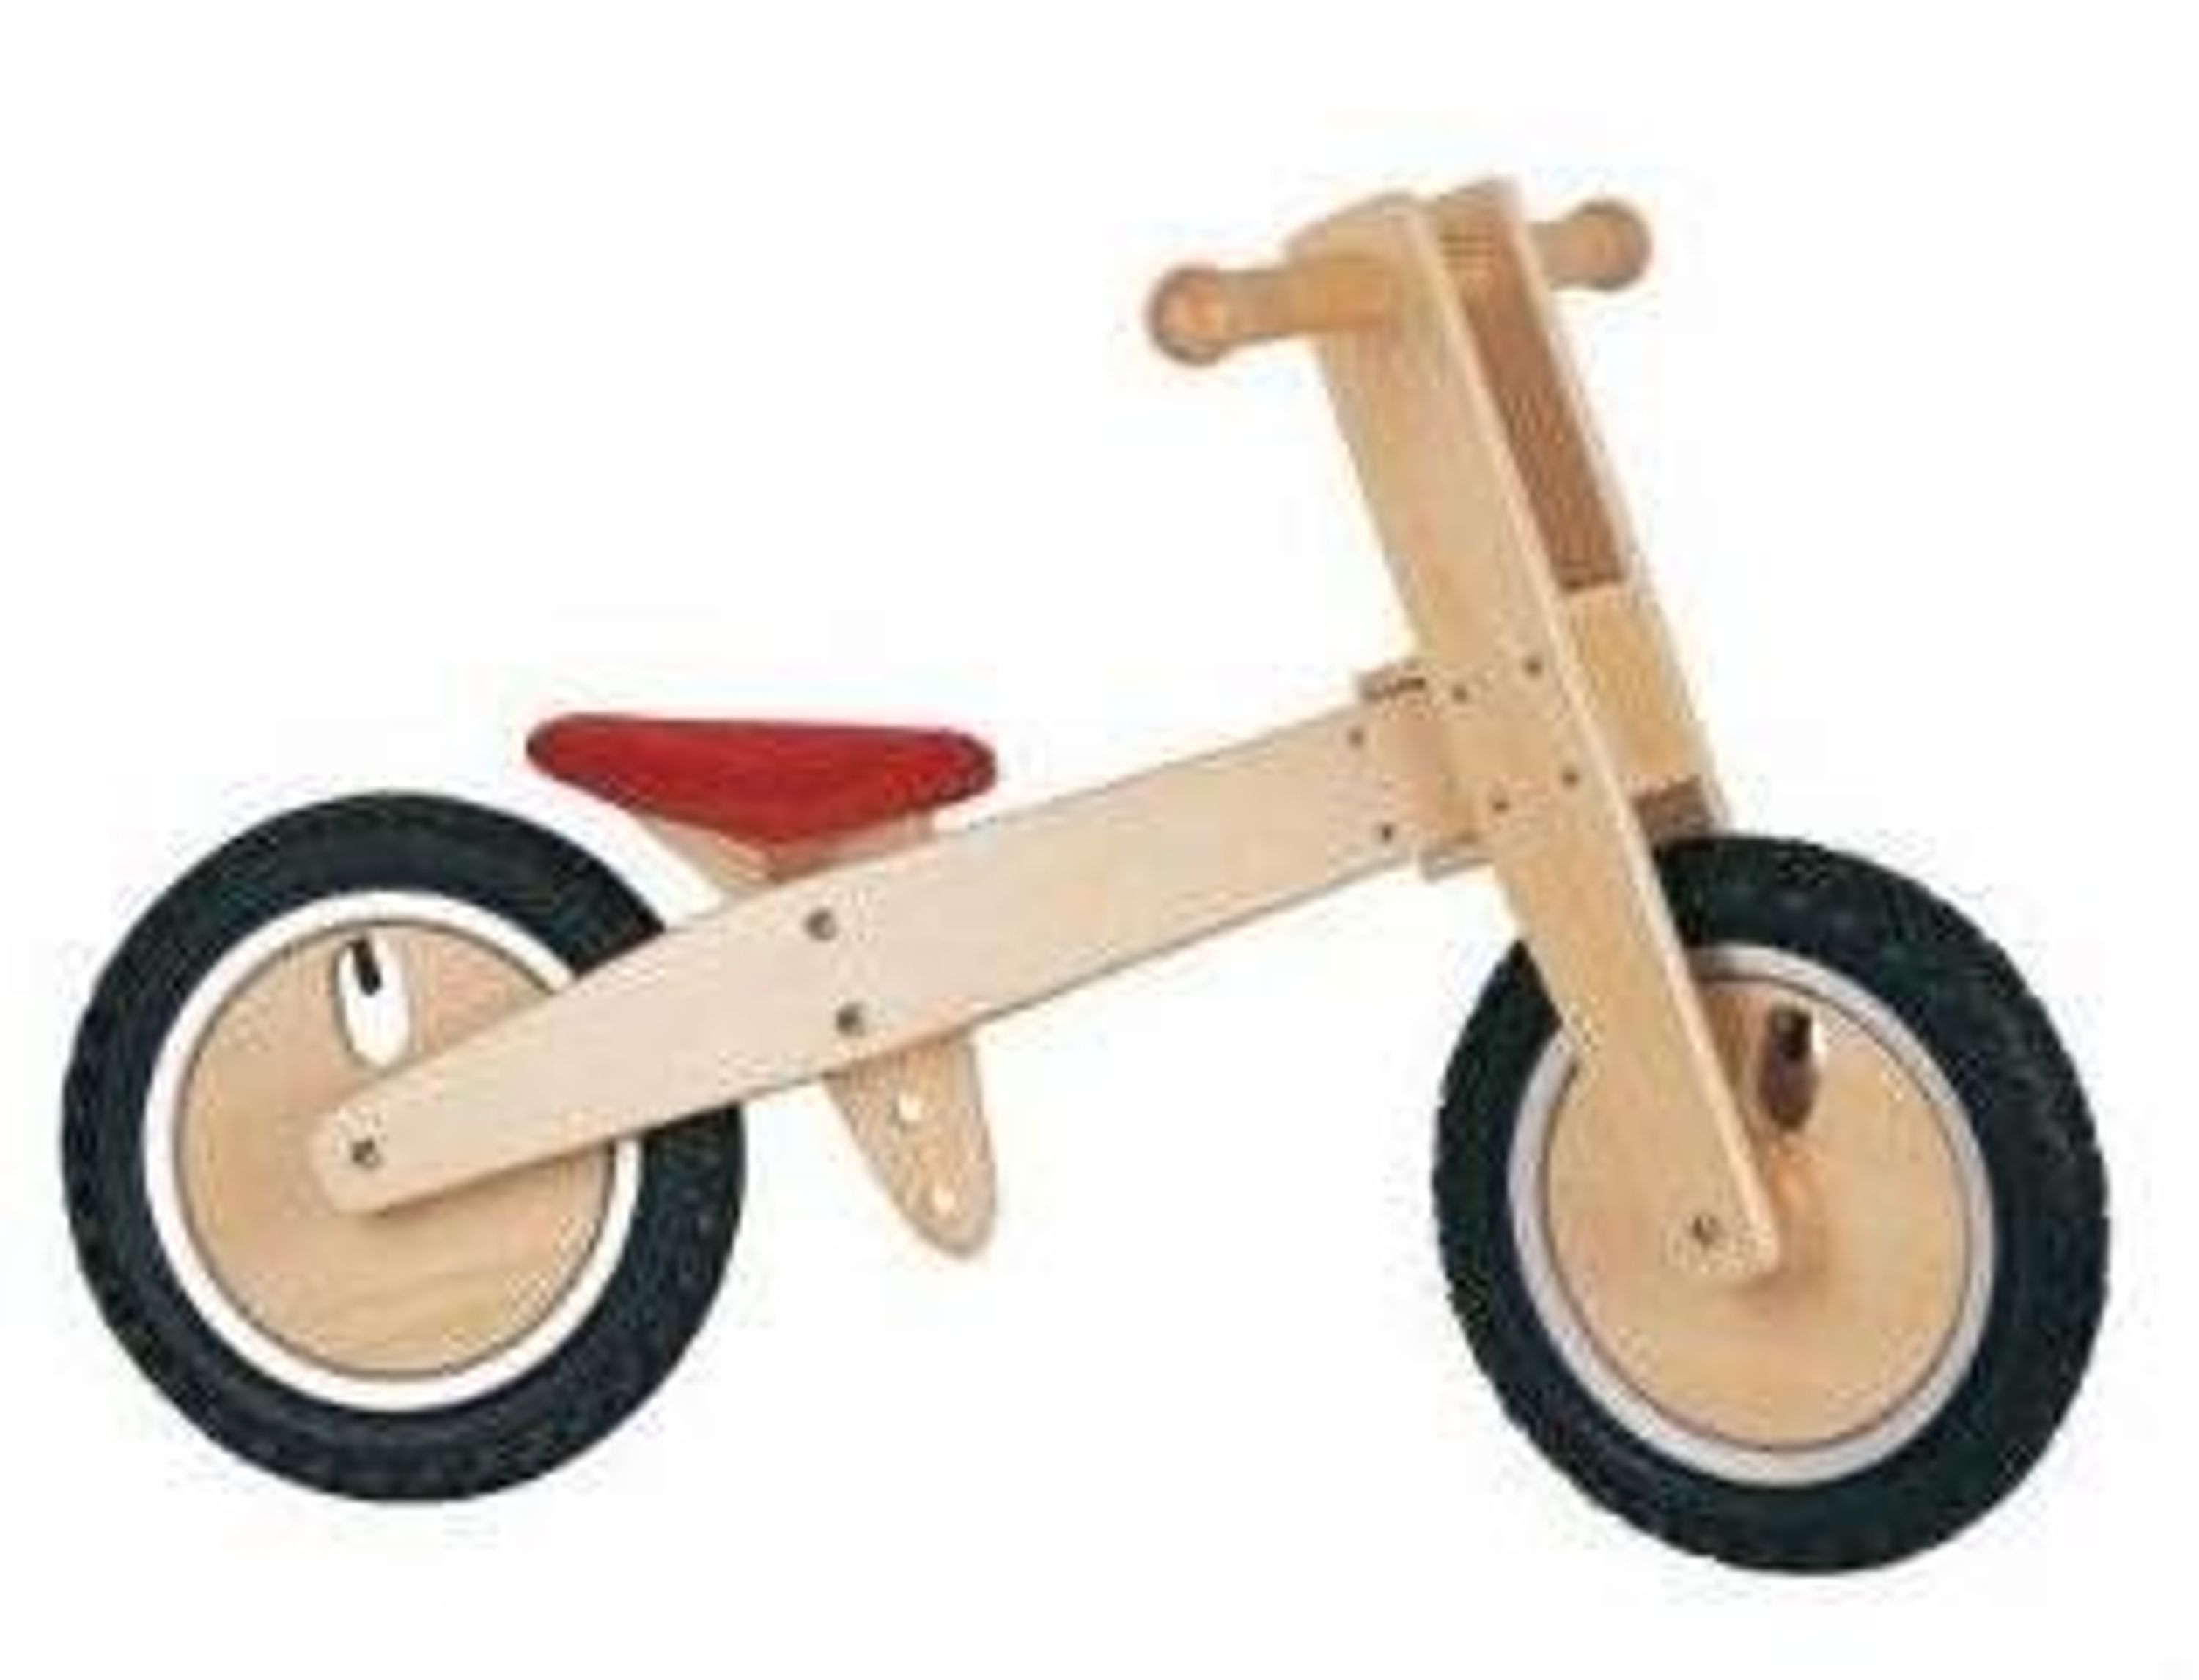 3x holzlaufrad neu ovp laufrad holz kinderfahrrad fahrrad kinderfahrzeuge gebraucht kaufen. Black Bedroom Furniture Sets. Home Design Ideas